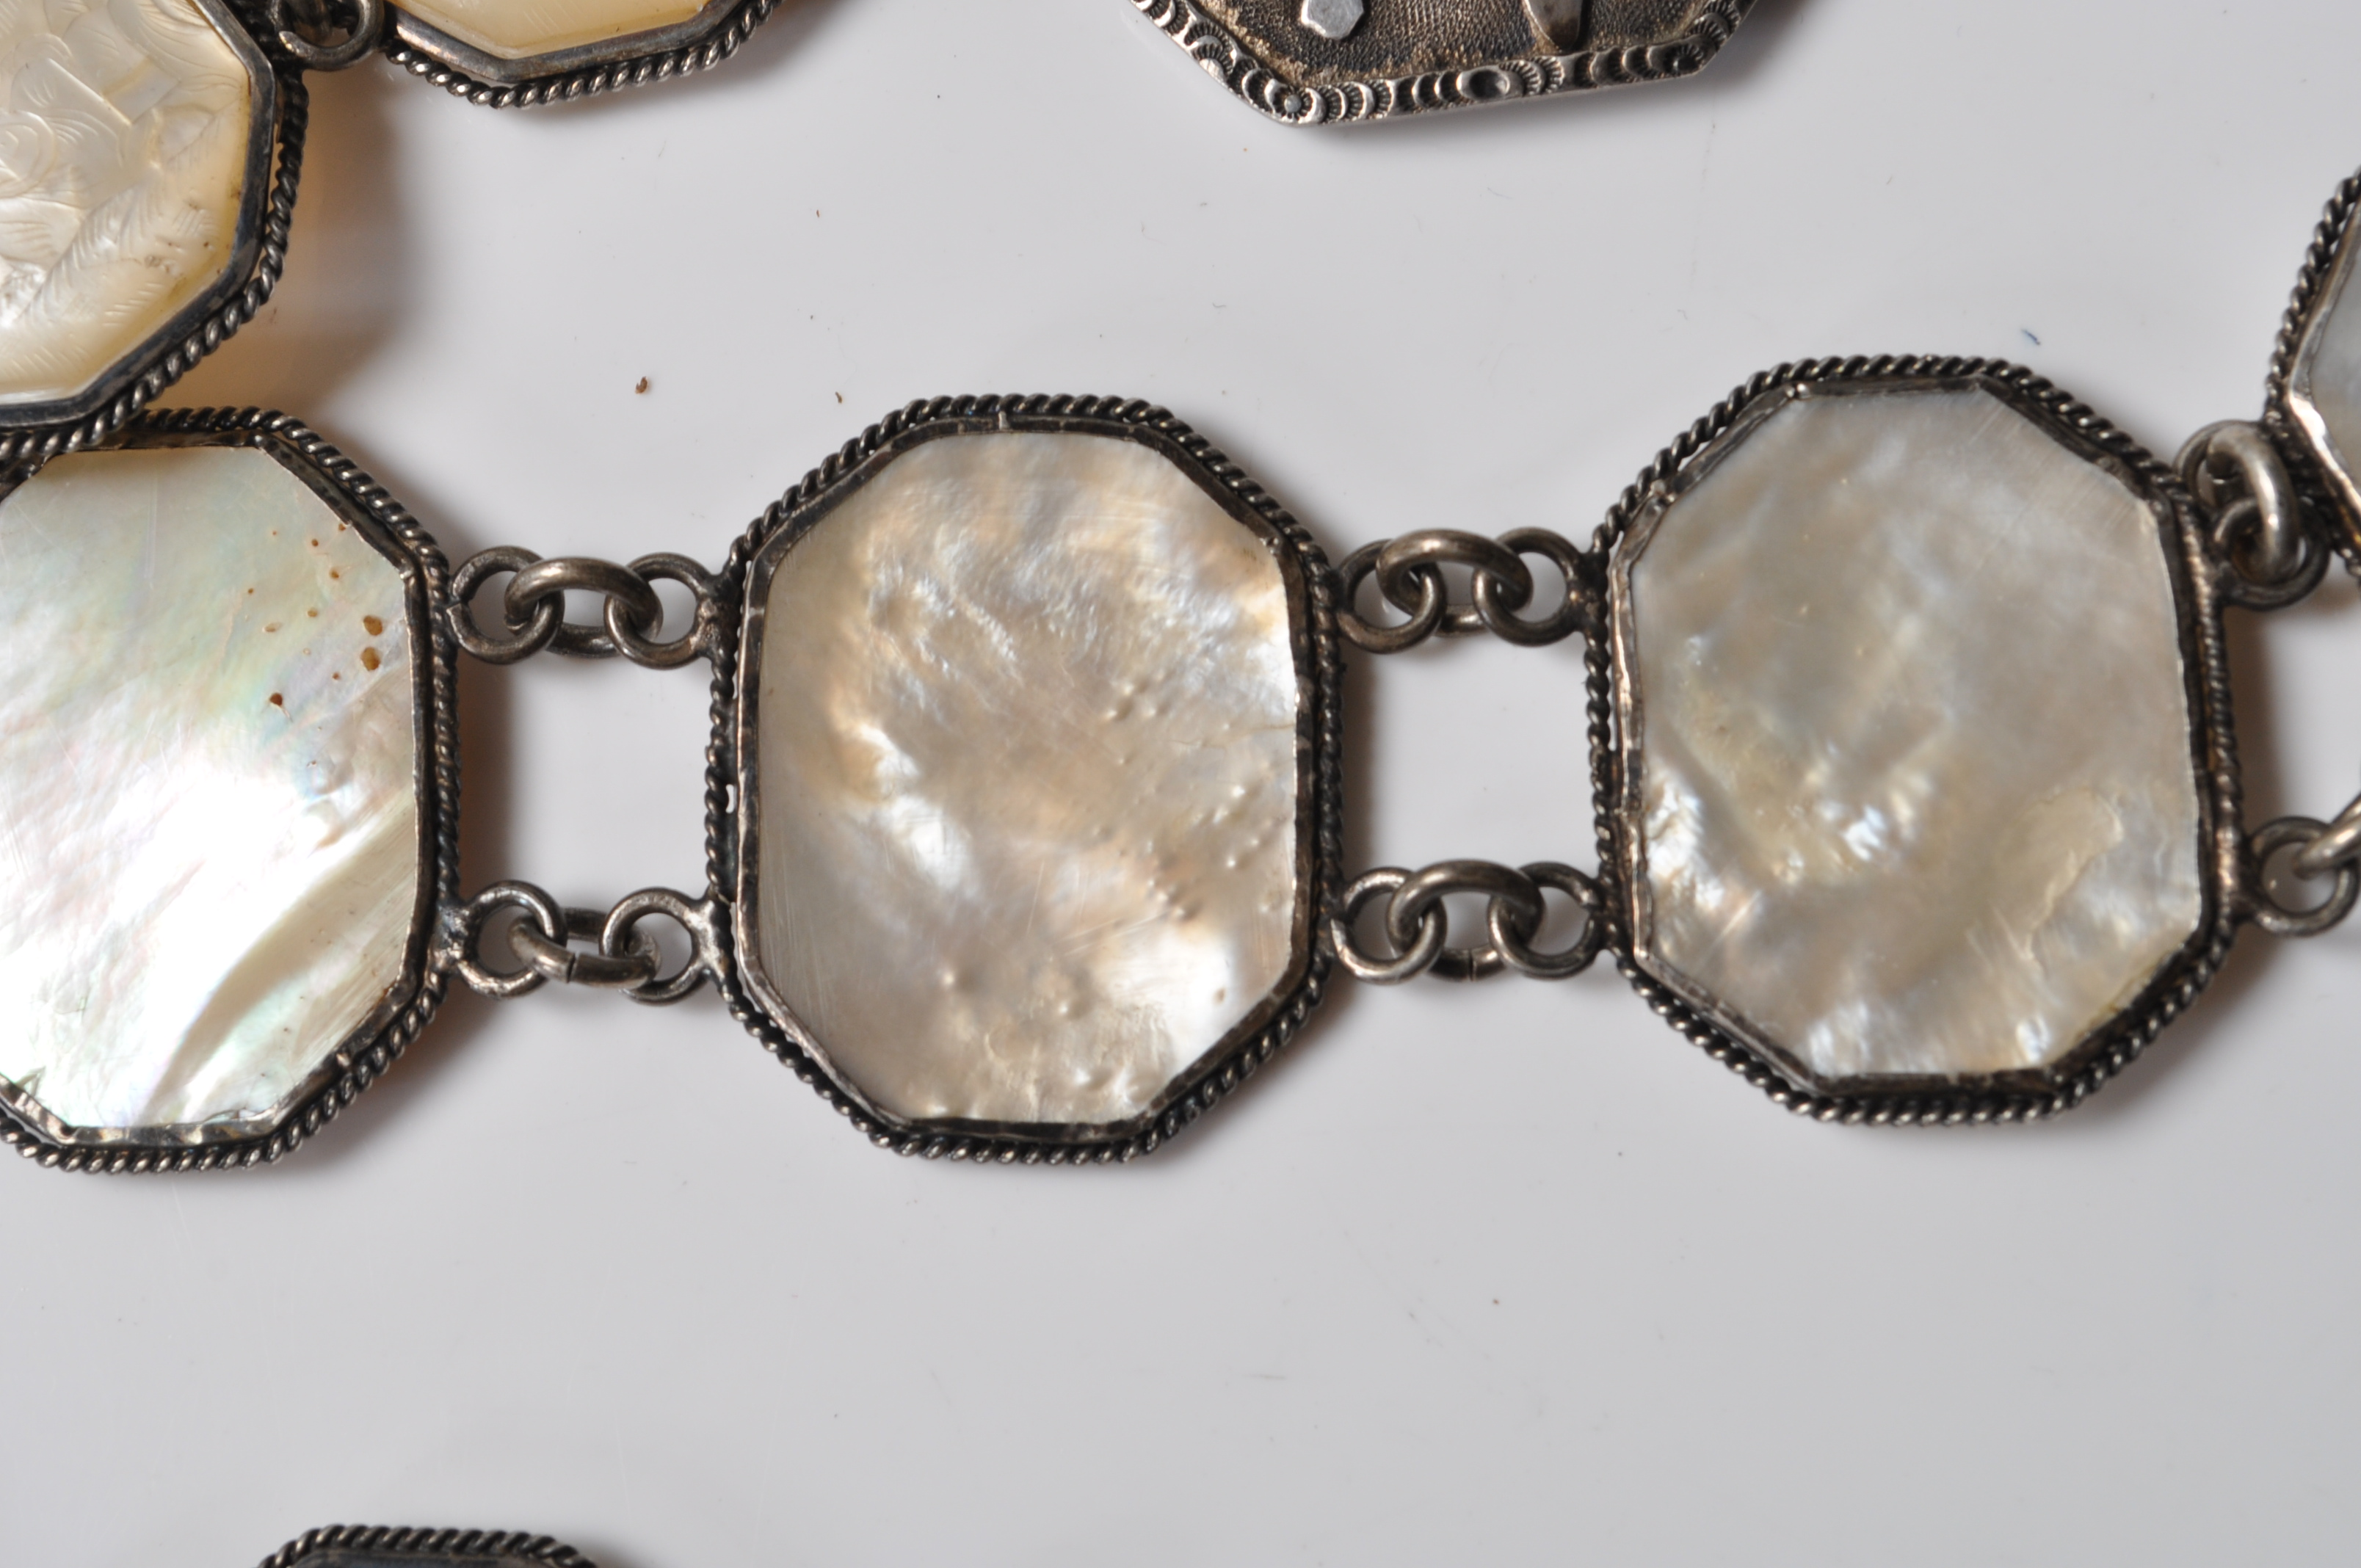 ANTIQUE CHINESE SILVER AND MOTHER OF PEARL BELT - Image 6 of 7